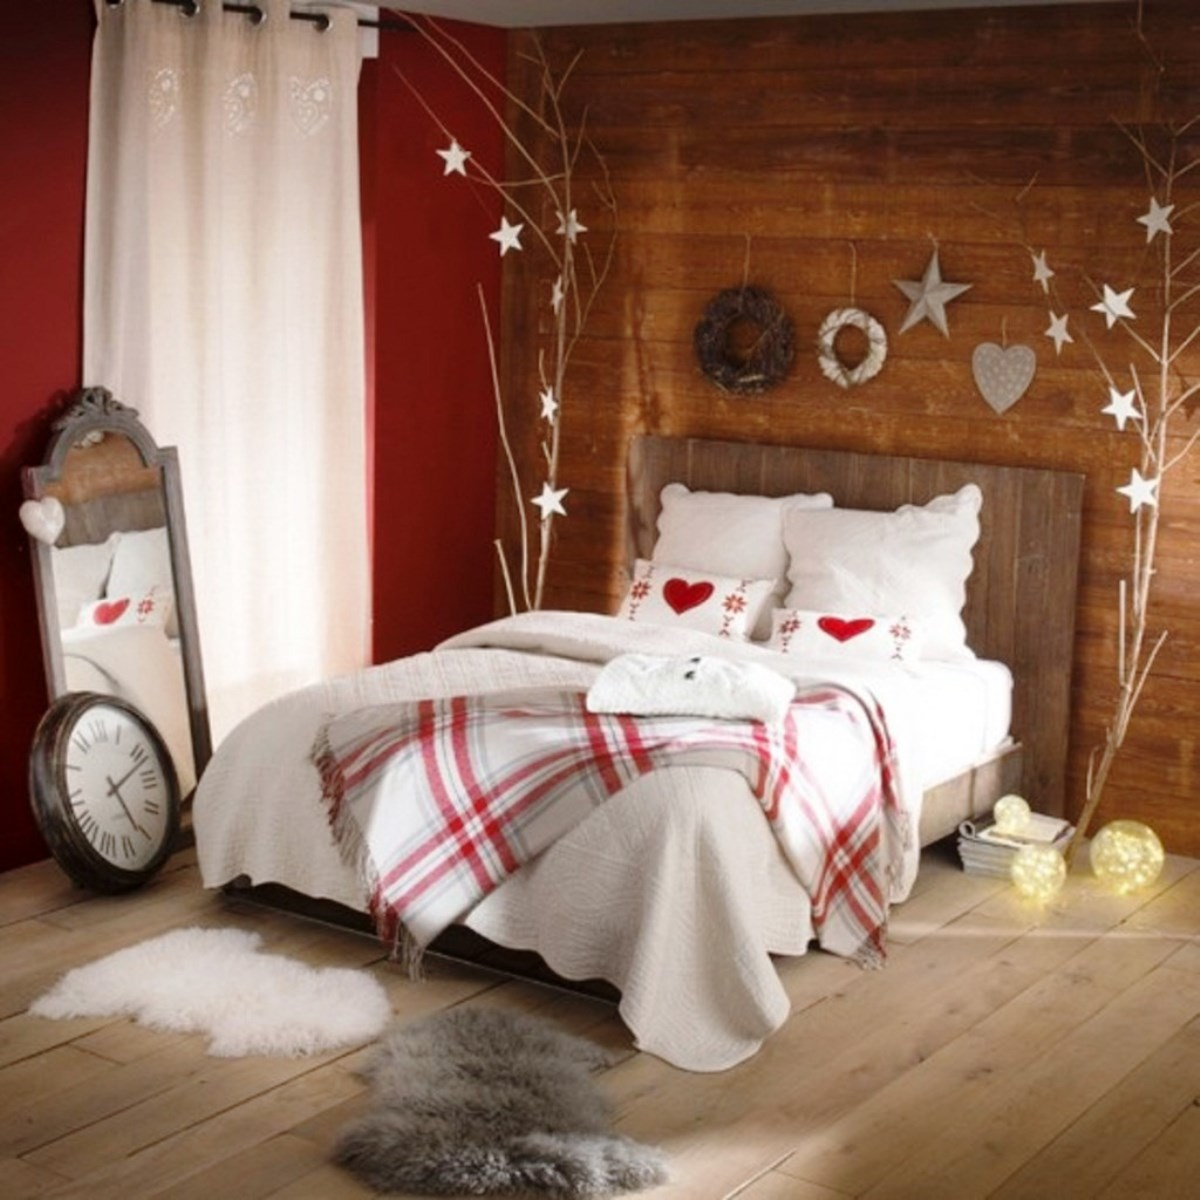 30 christmas bedroom decorations ideas for Bedroom decorating ideas